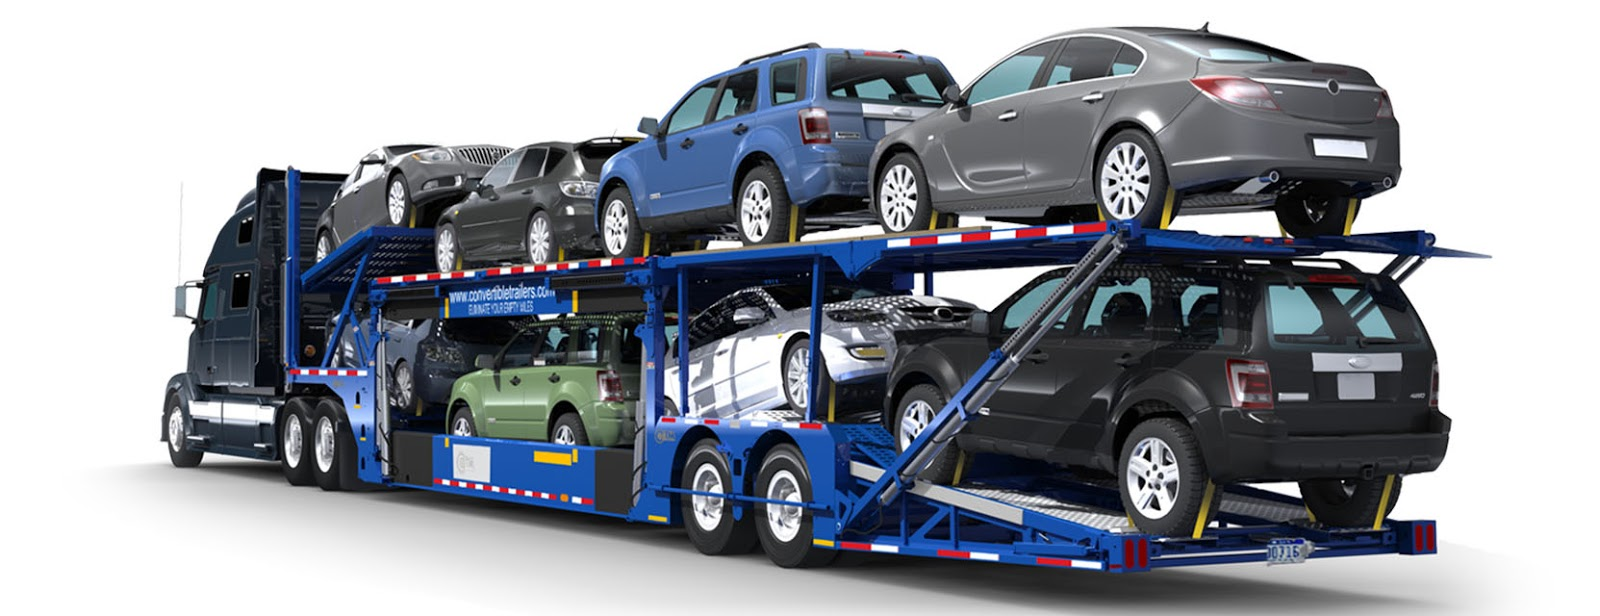 Choosing The Right Auto Transport Company to Ship your Car